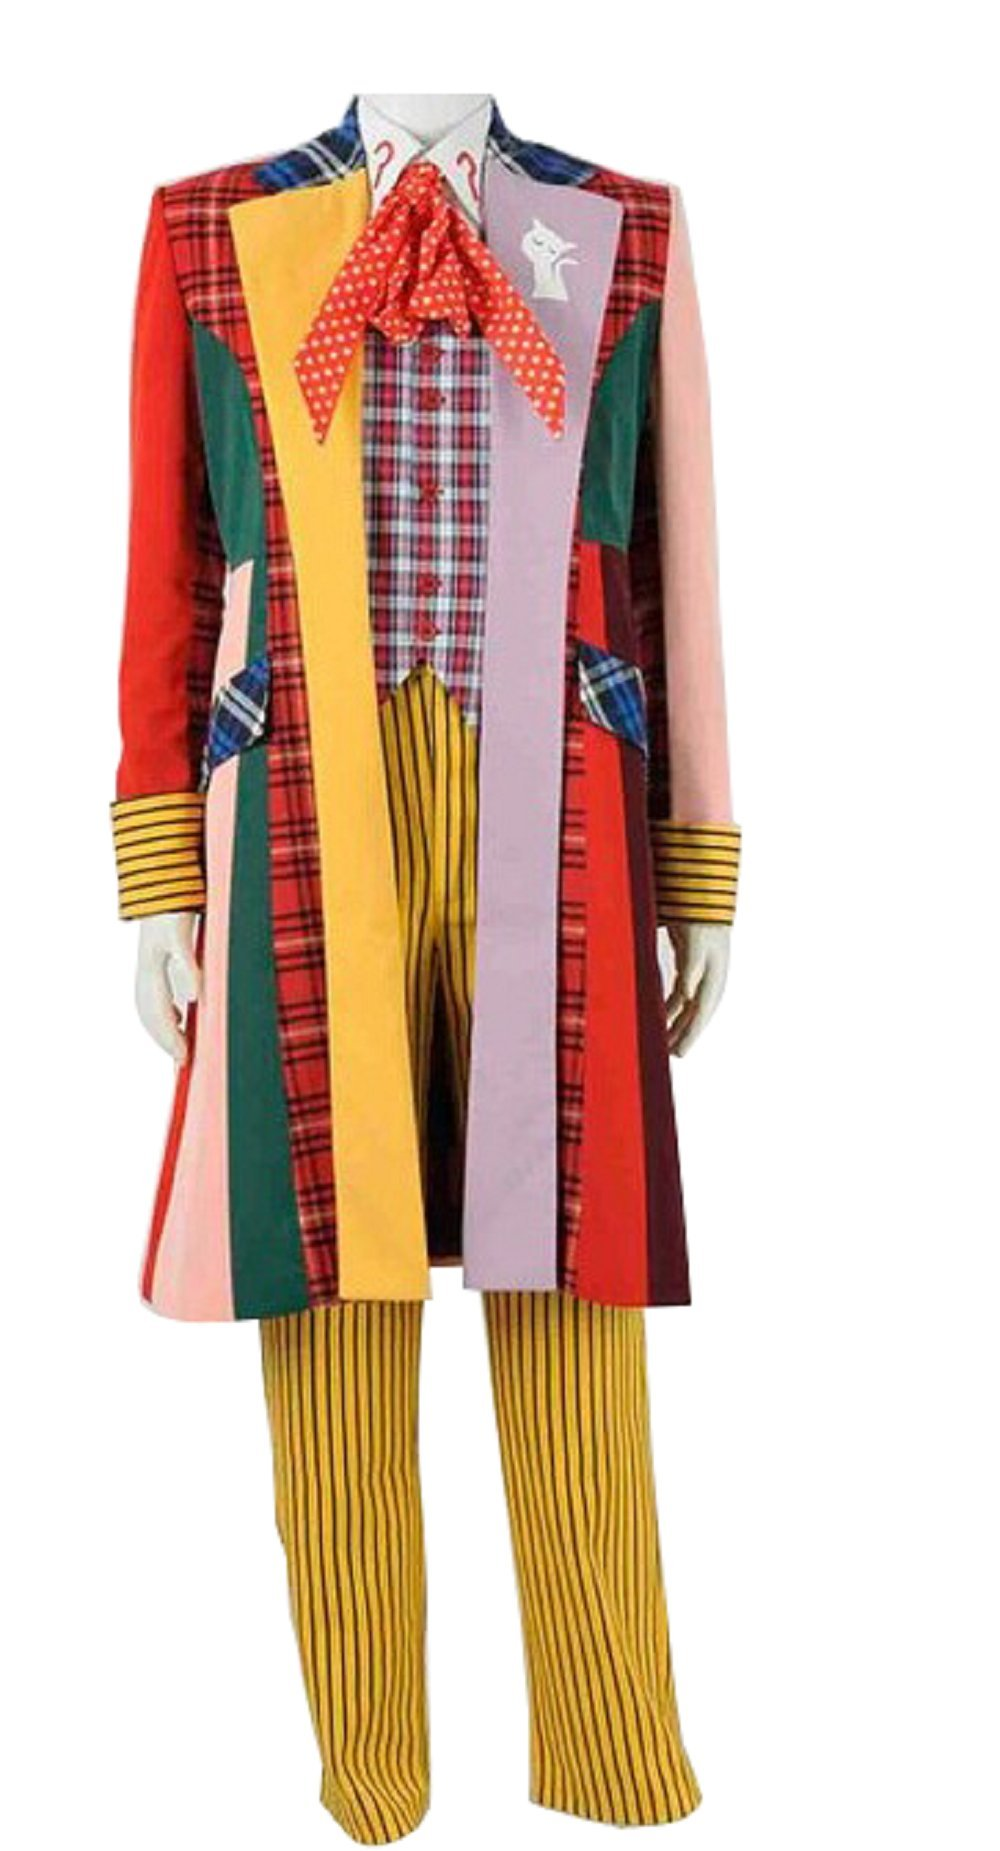 Cosdaddy Doctor 6th Sixth Doctor Dr Who Cosplay Costume Colorful Lattice Jacket Coat 98112638 (XL)